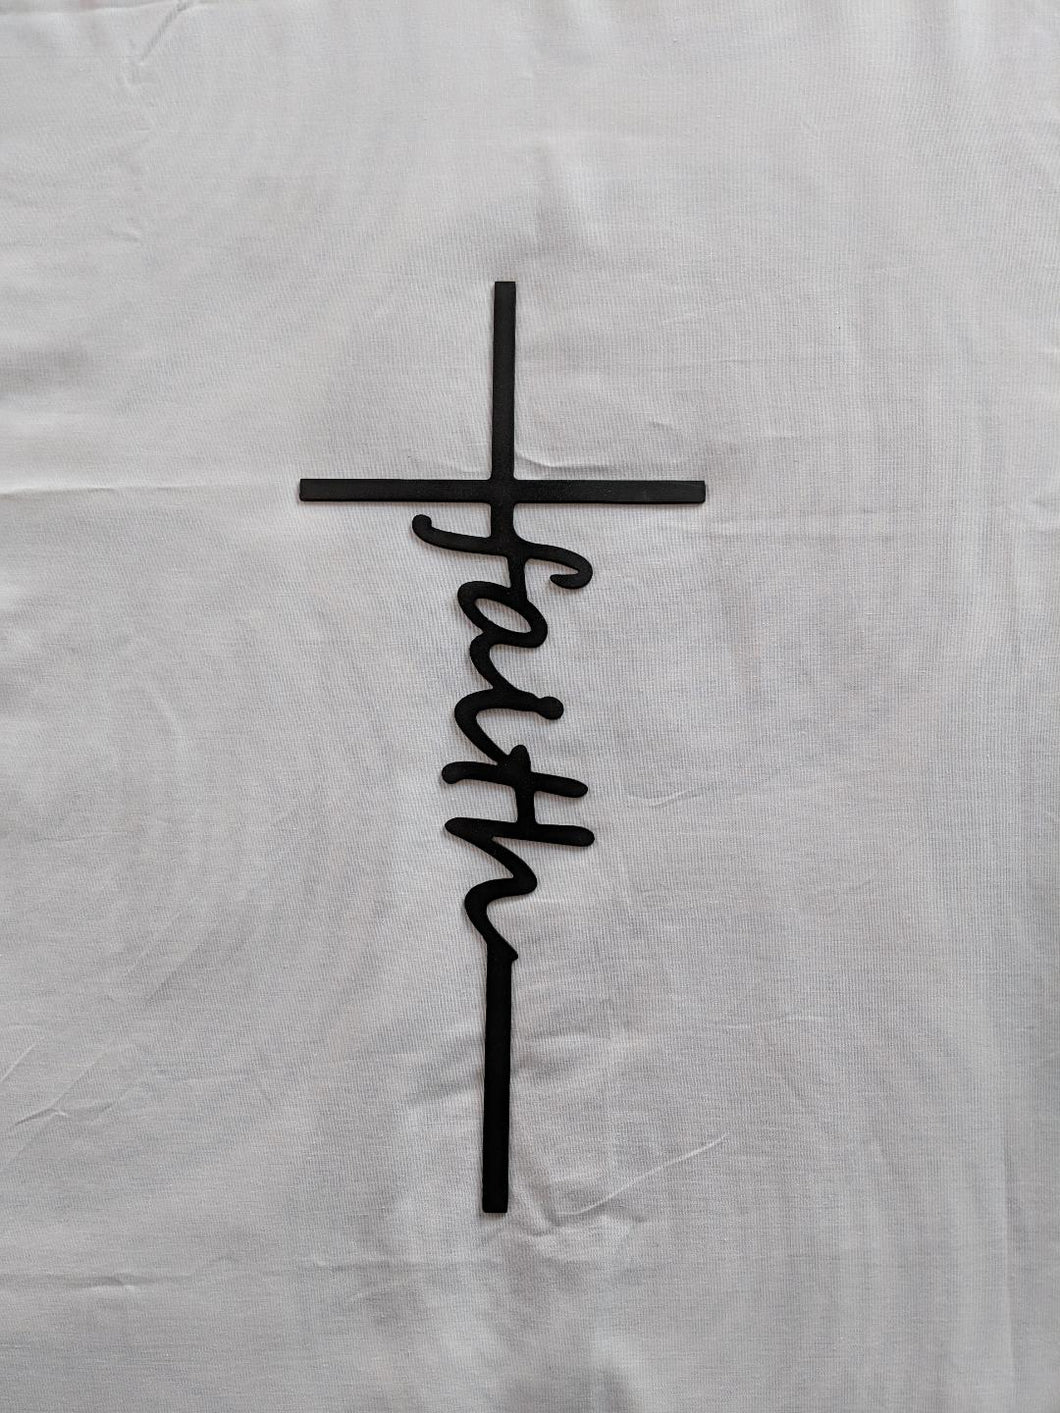 Cross with Faith written